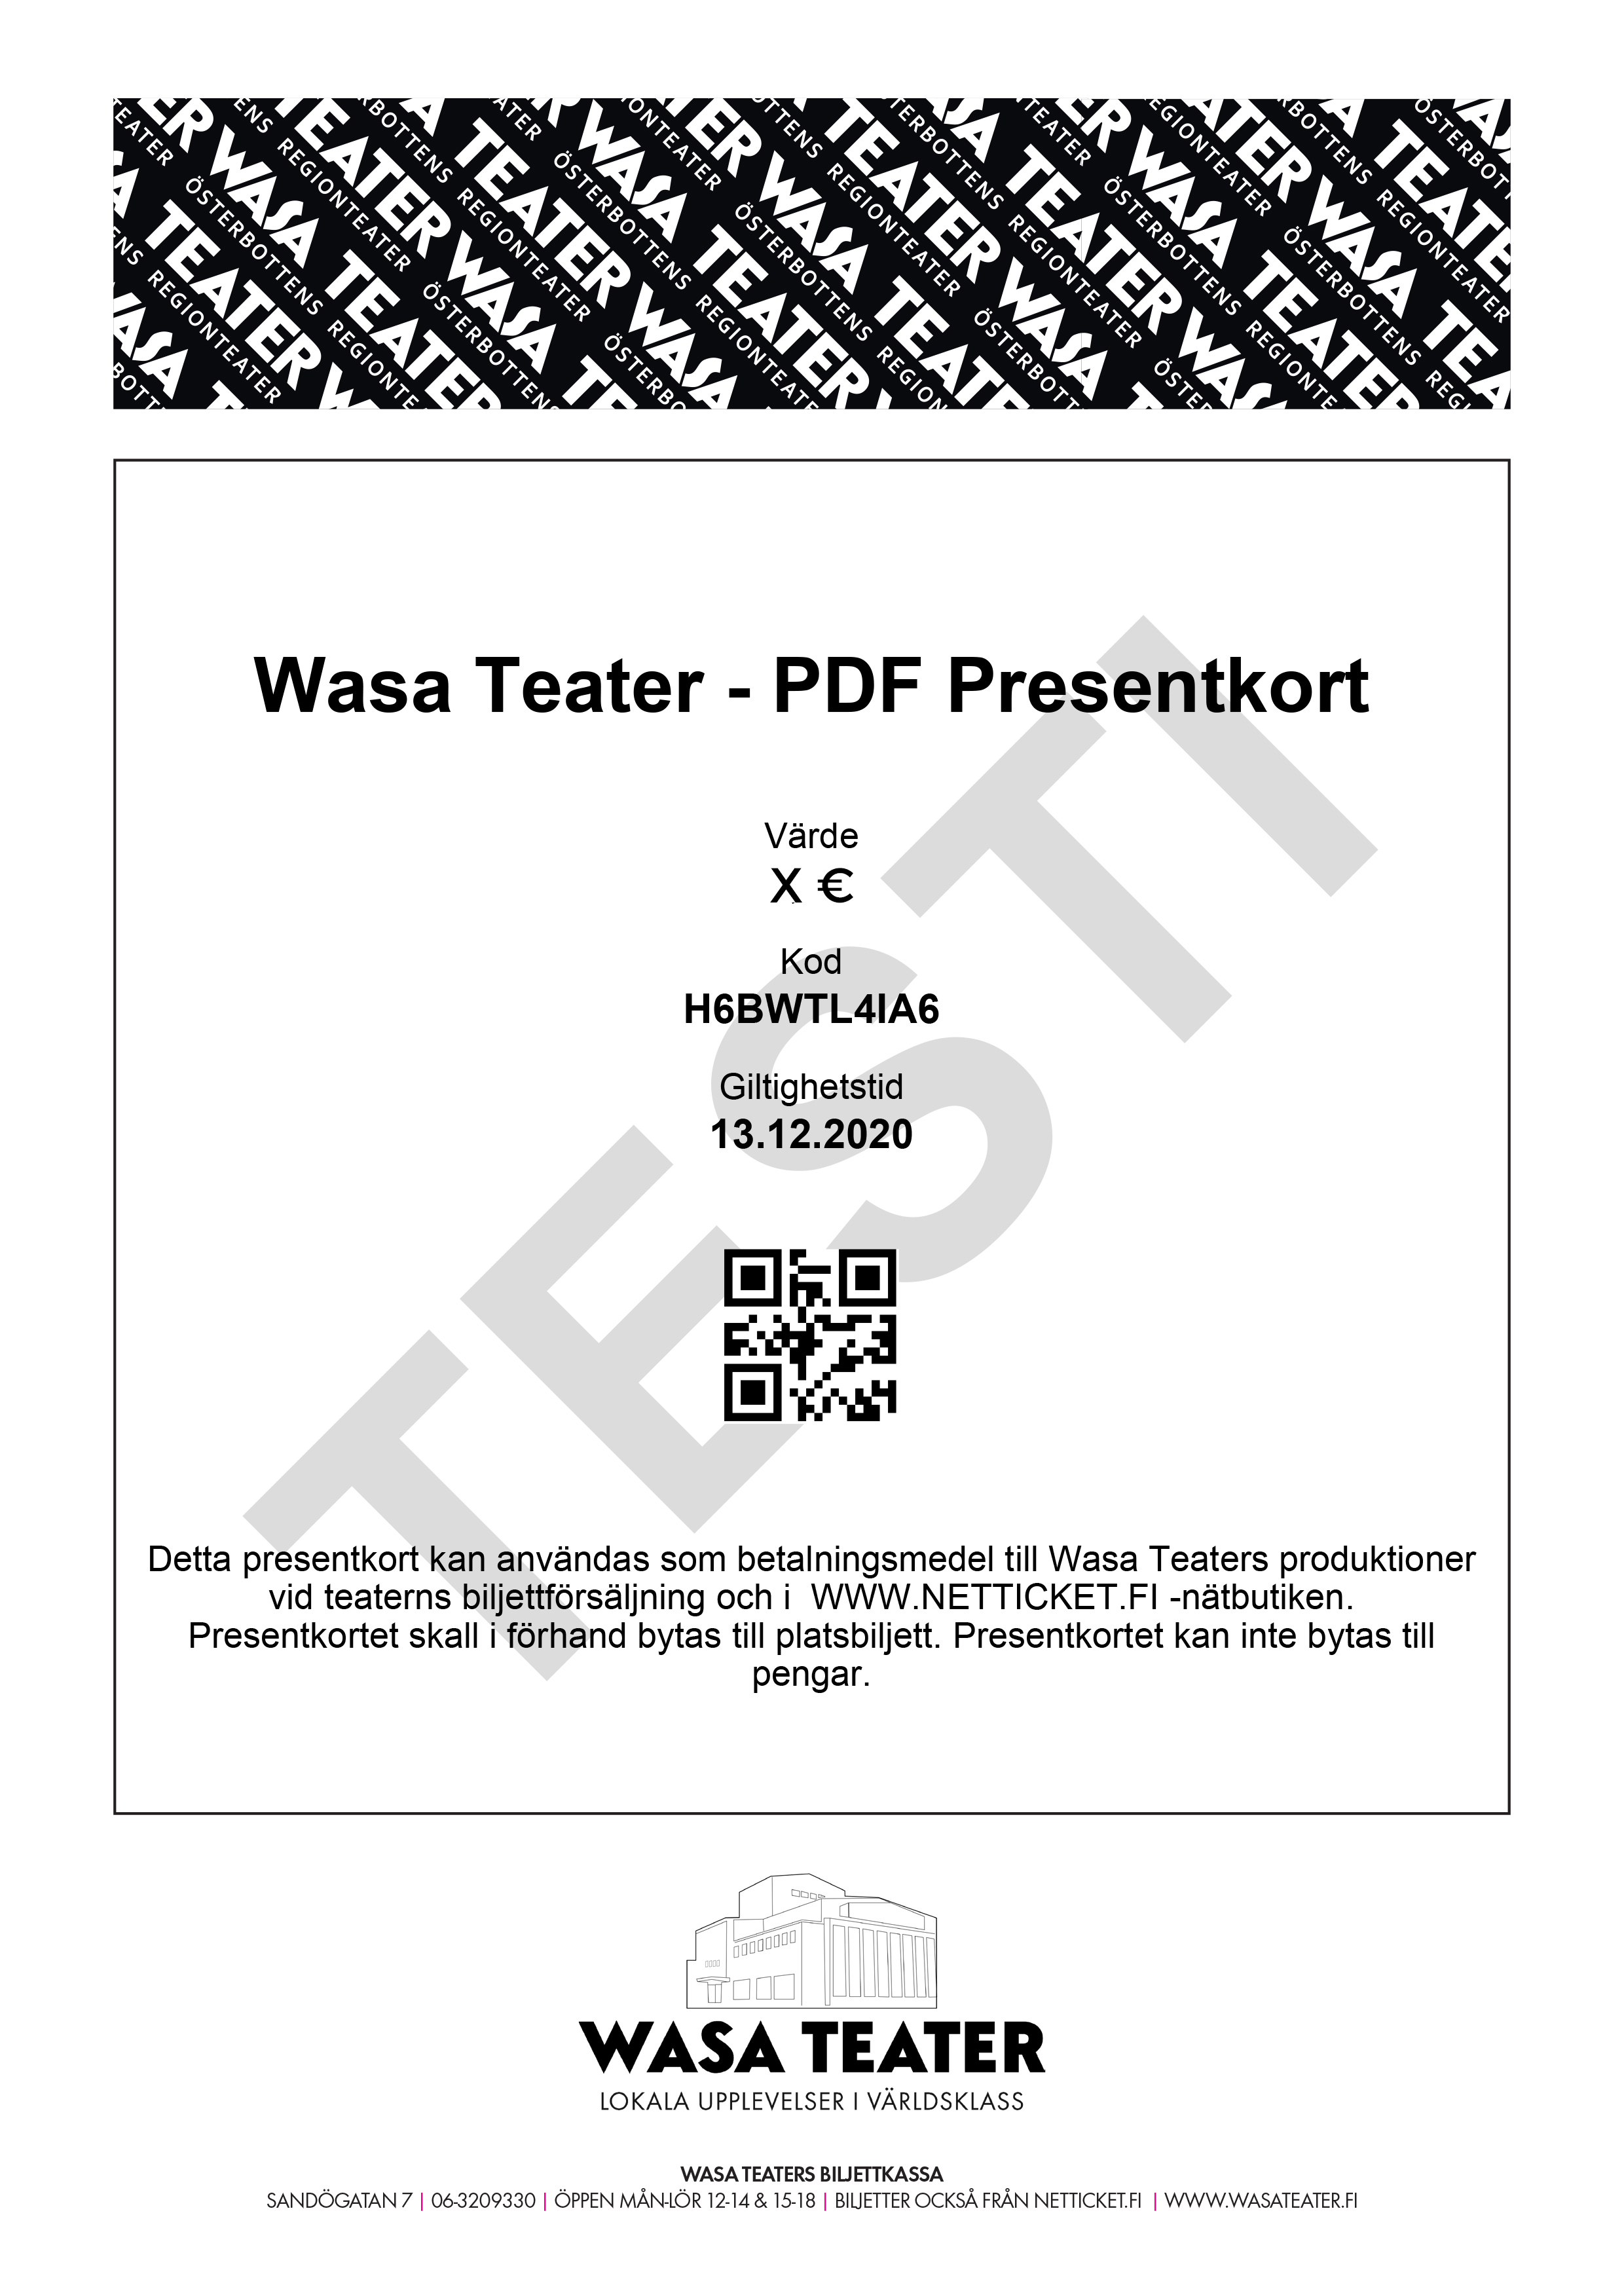 Wasa Teater - PDF Gift Card - Open sum